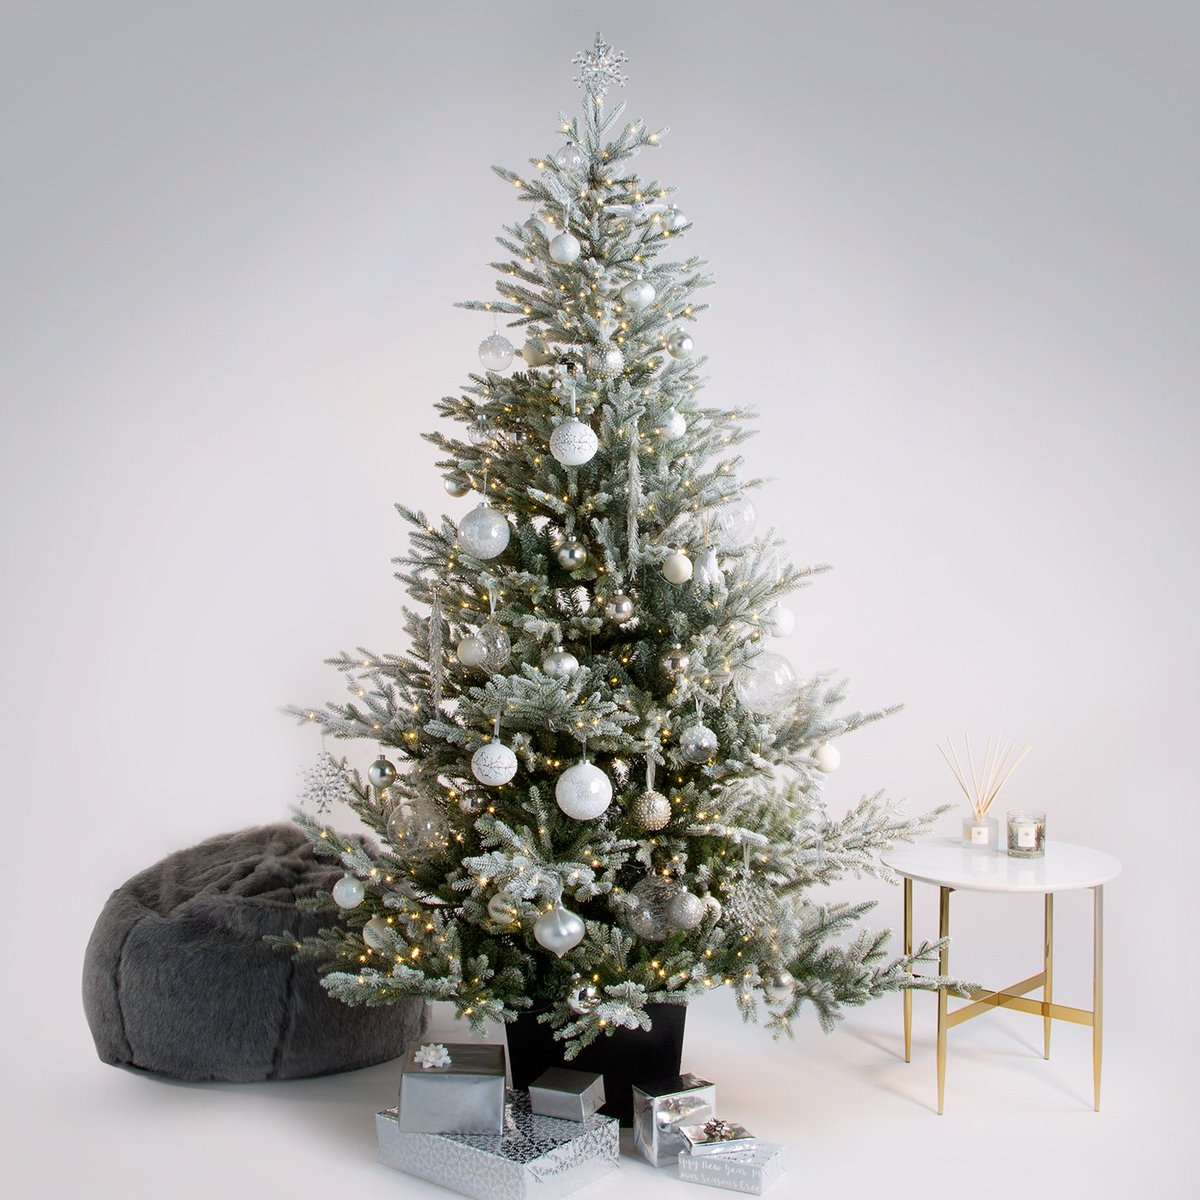 John Lewis Christmas Tree.John Lewis Partners On Twitter Looking For Christmas